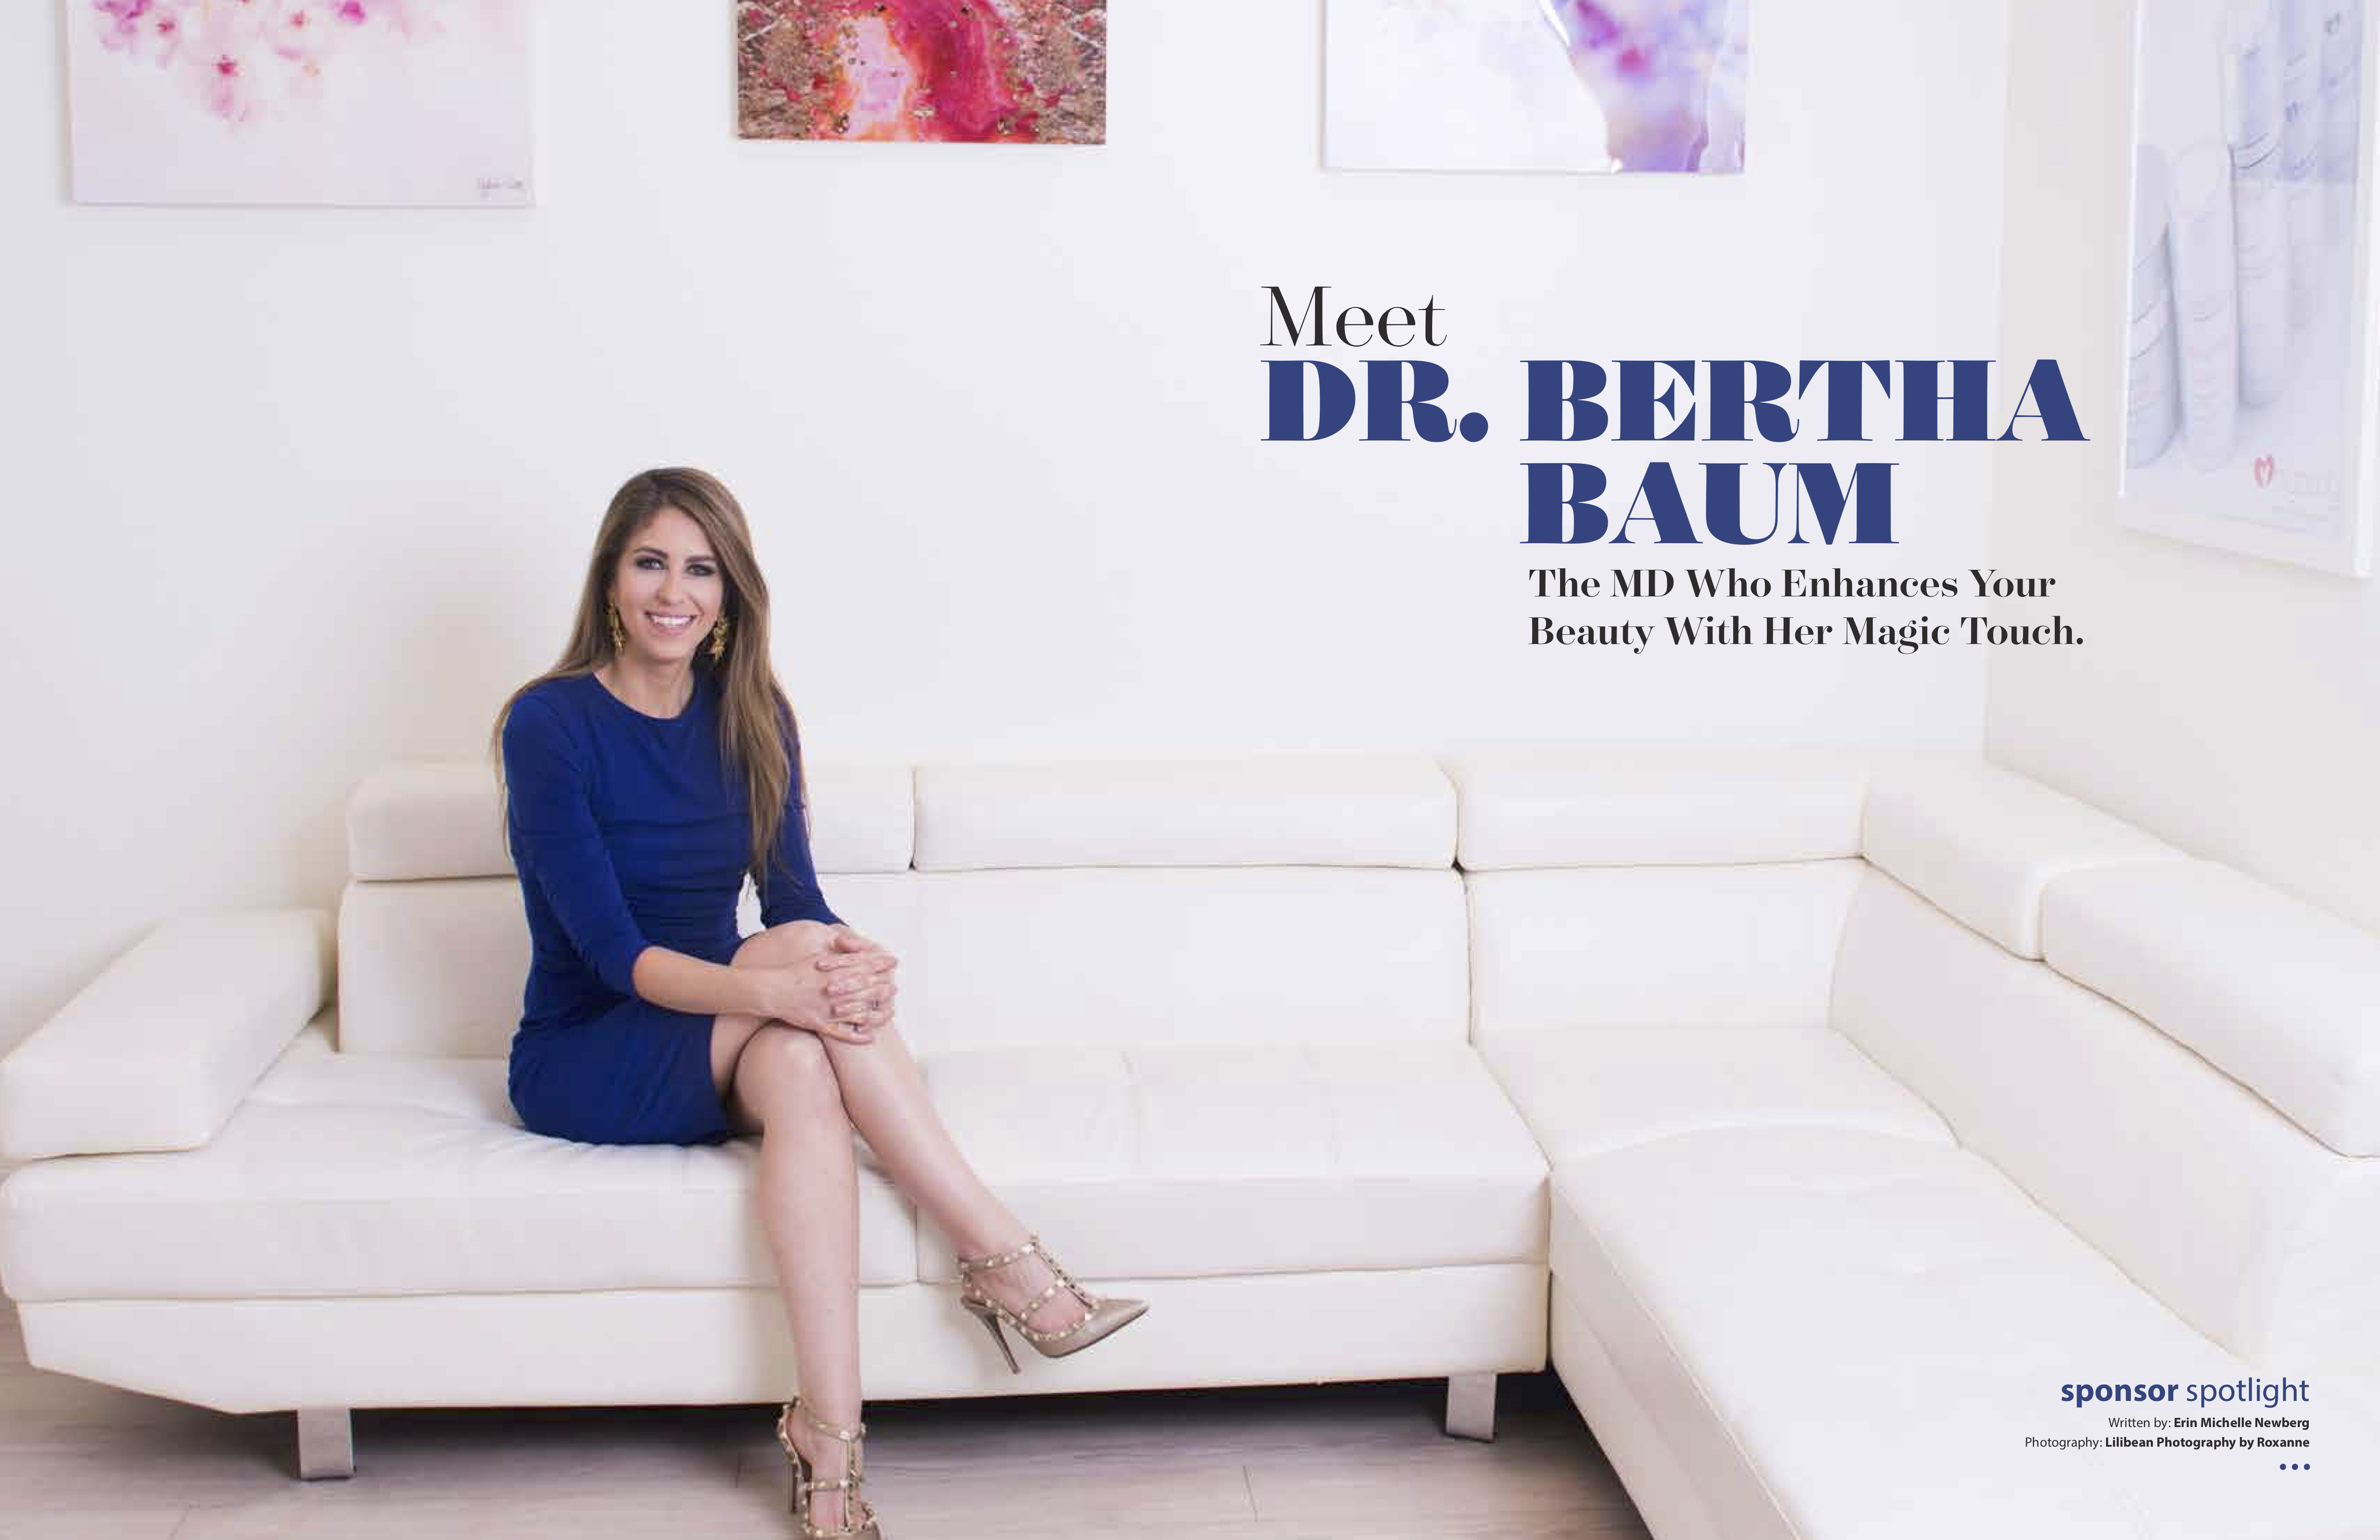 GB Living: Meet Dr. Bertha Baum - The MD Who Enhances Your Beauty With Her Magic Touch.